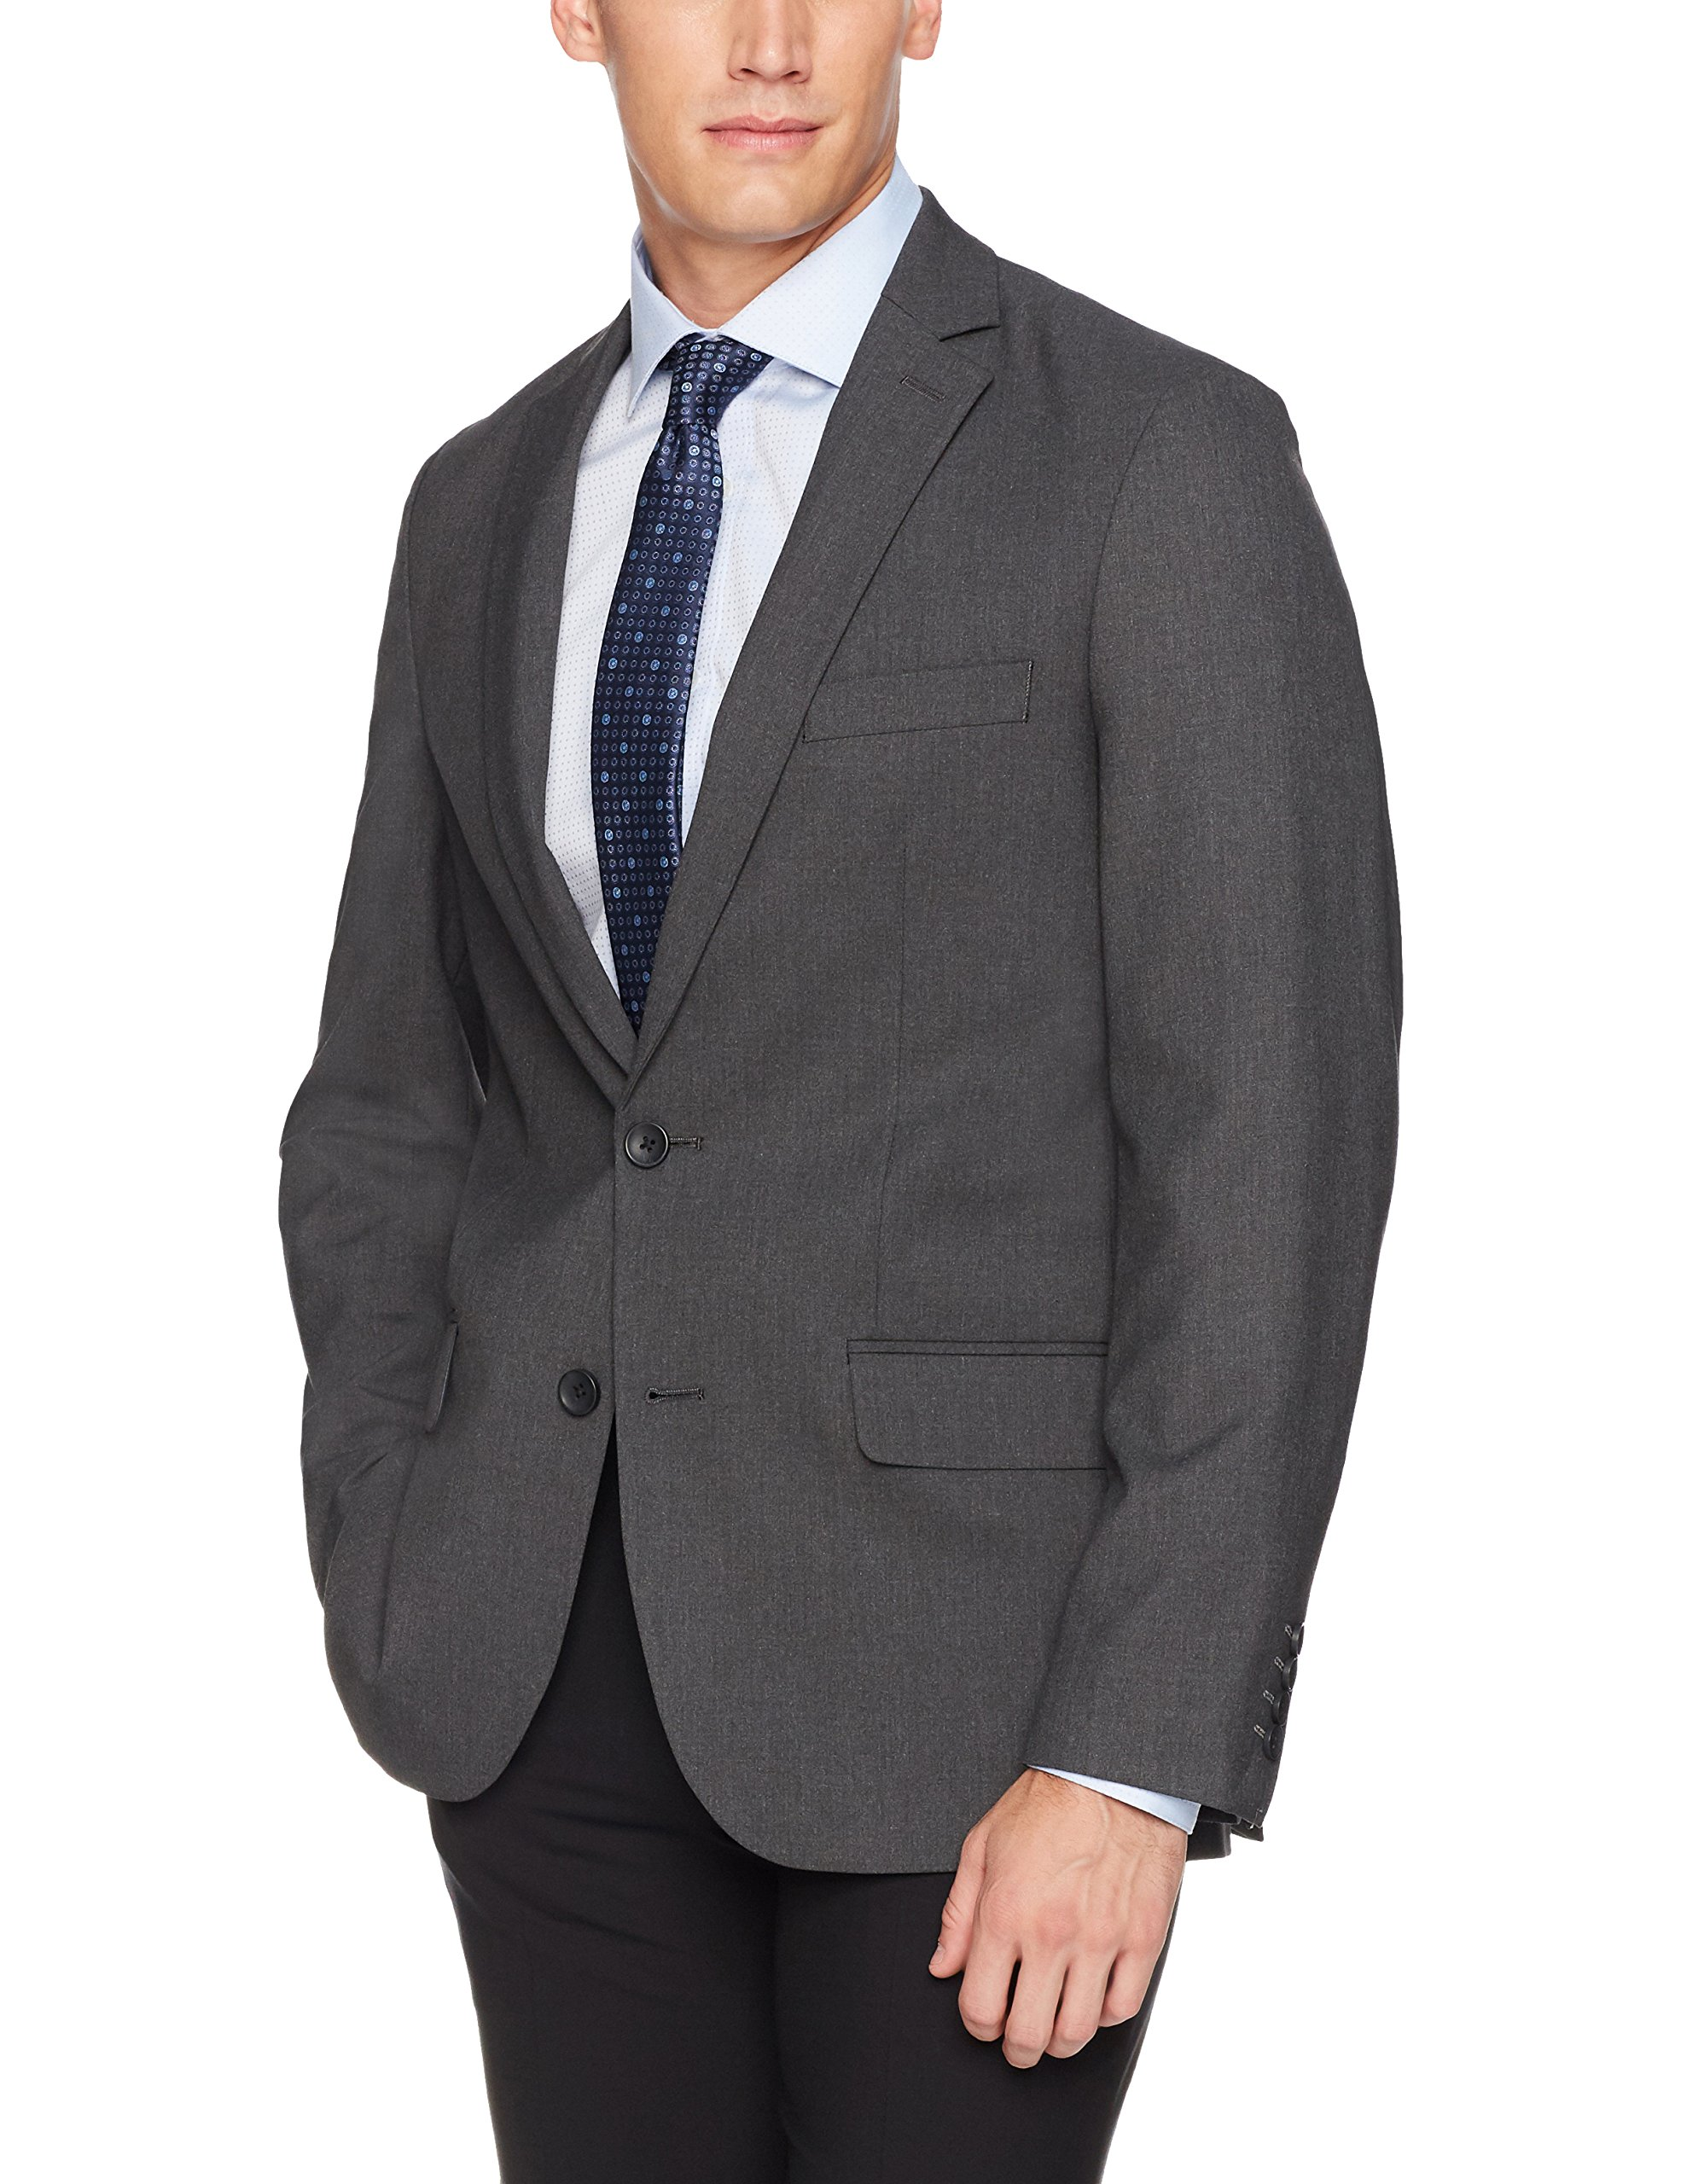 Haggar J.M 4-Way Stretch Solid 2-Button Slim Fit Suit Separate Coat, Charcoal Heather, 40R